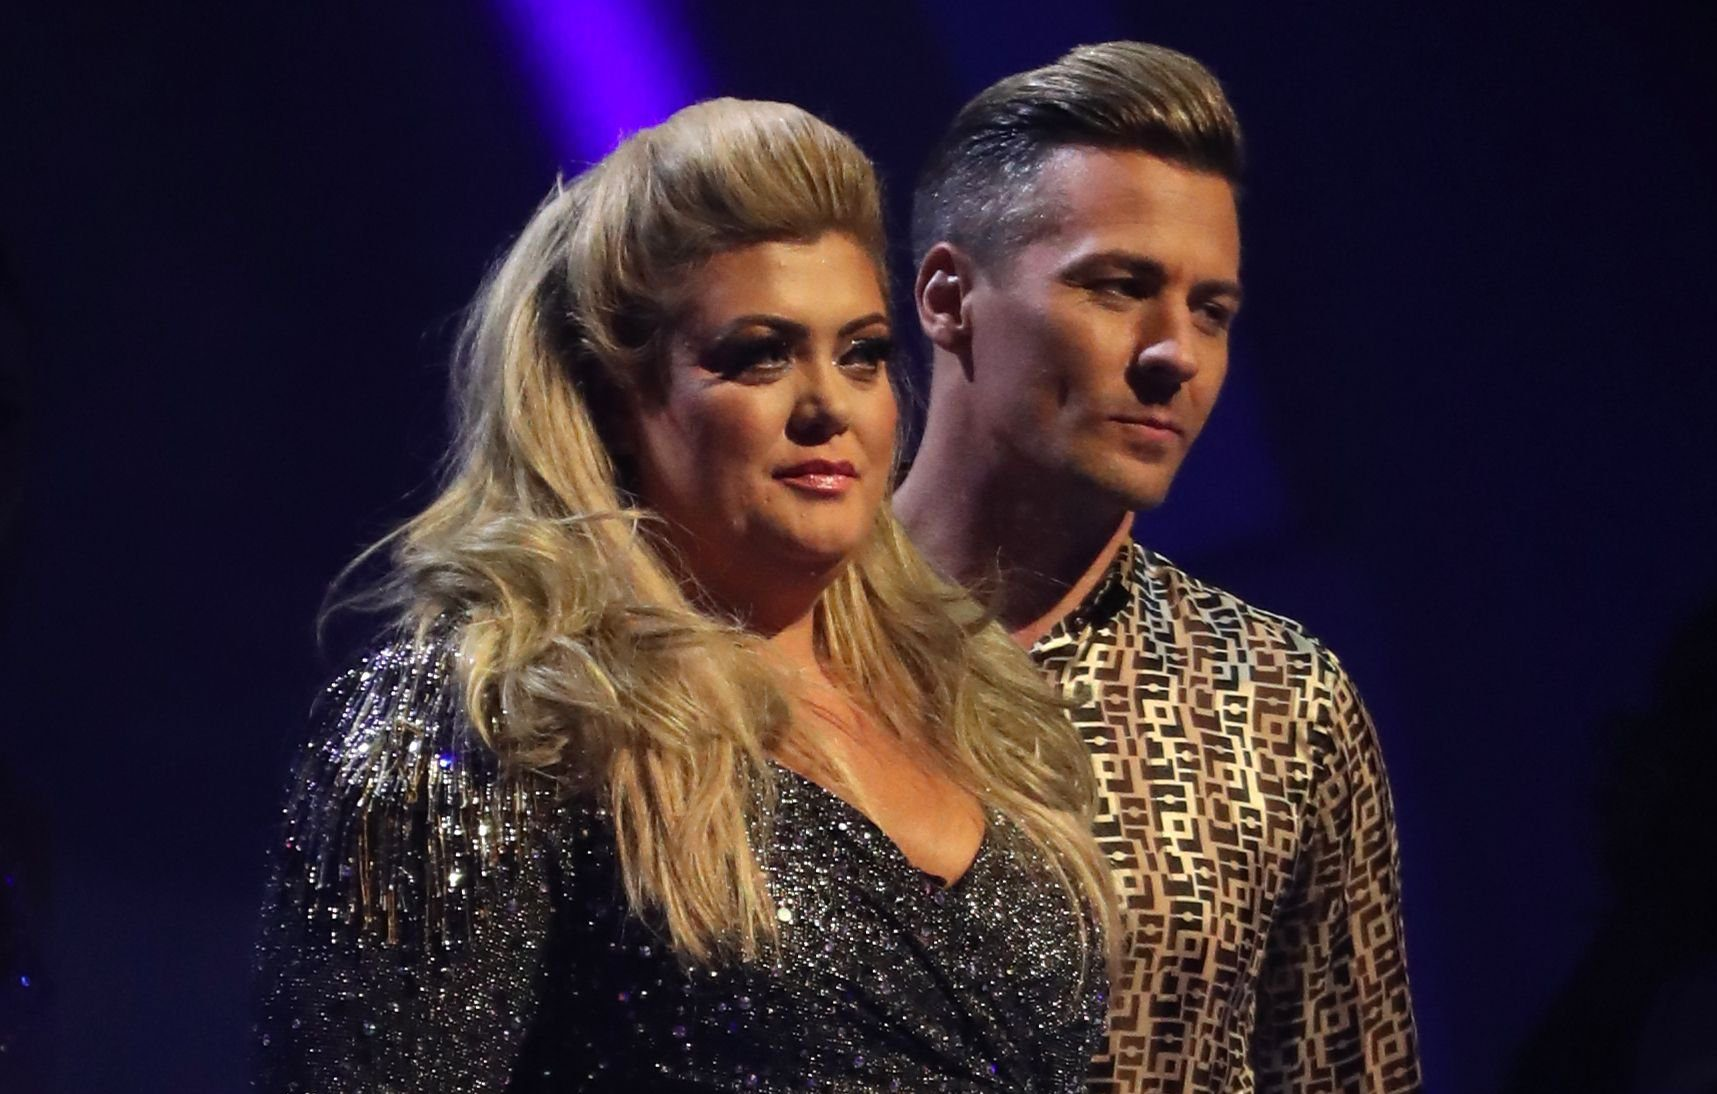 Editorial use only Mandatory Credit: Photo by Matt Frost/ITV/REX (10067937ja) Gemma Collins and Matt Evers 'Dancing on Ice' TV show, Series 11, Episode 3, Hertfordshire, UK - 20 Jan 2019